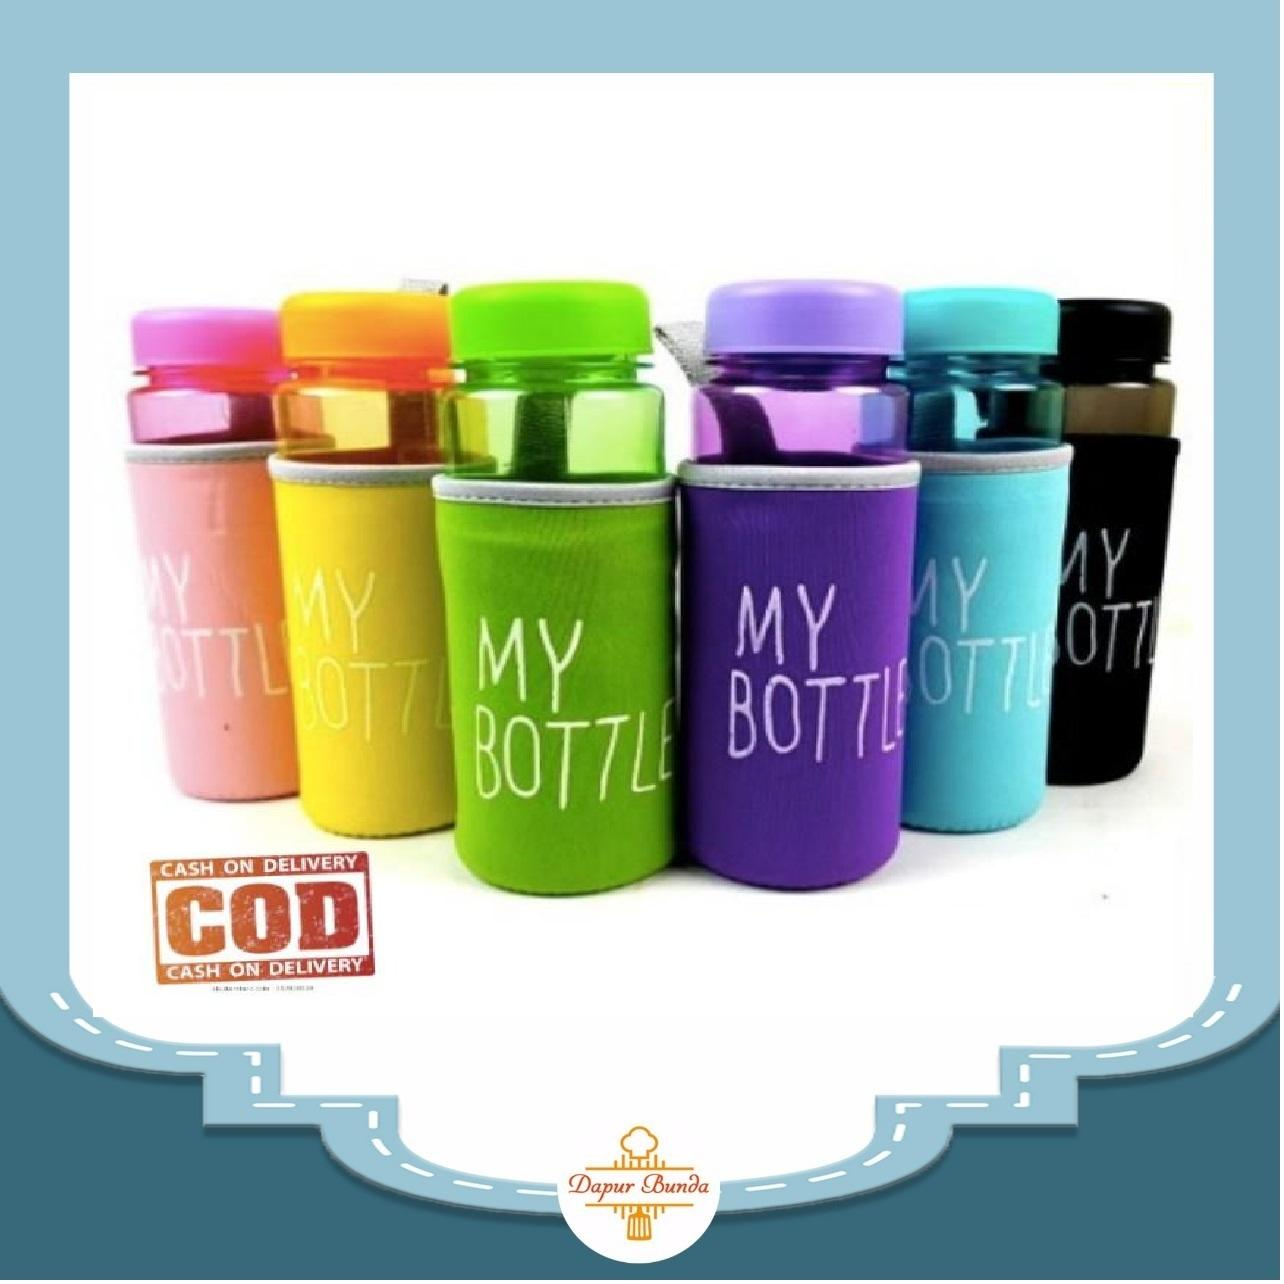 Dapurbunda Mbf My Bottle Bening Warna Full Pouch Busa Warna 500ml My Bottle Free Pouch Busa By Dapurbunda.